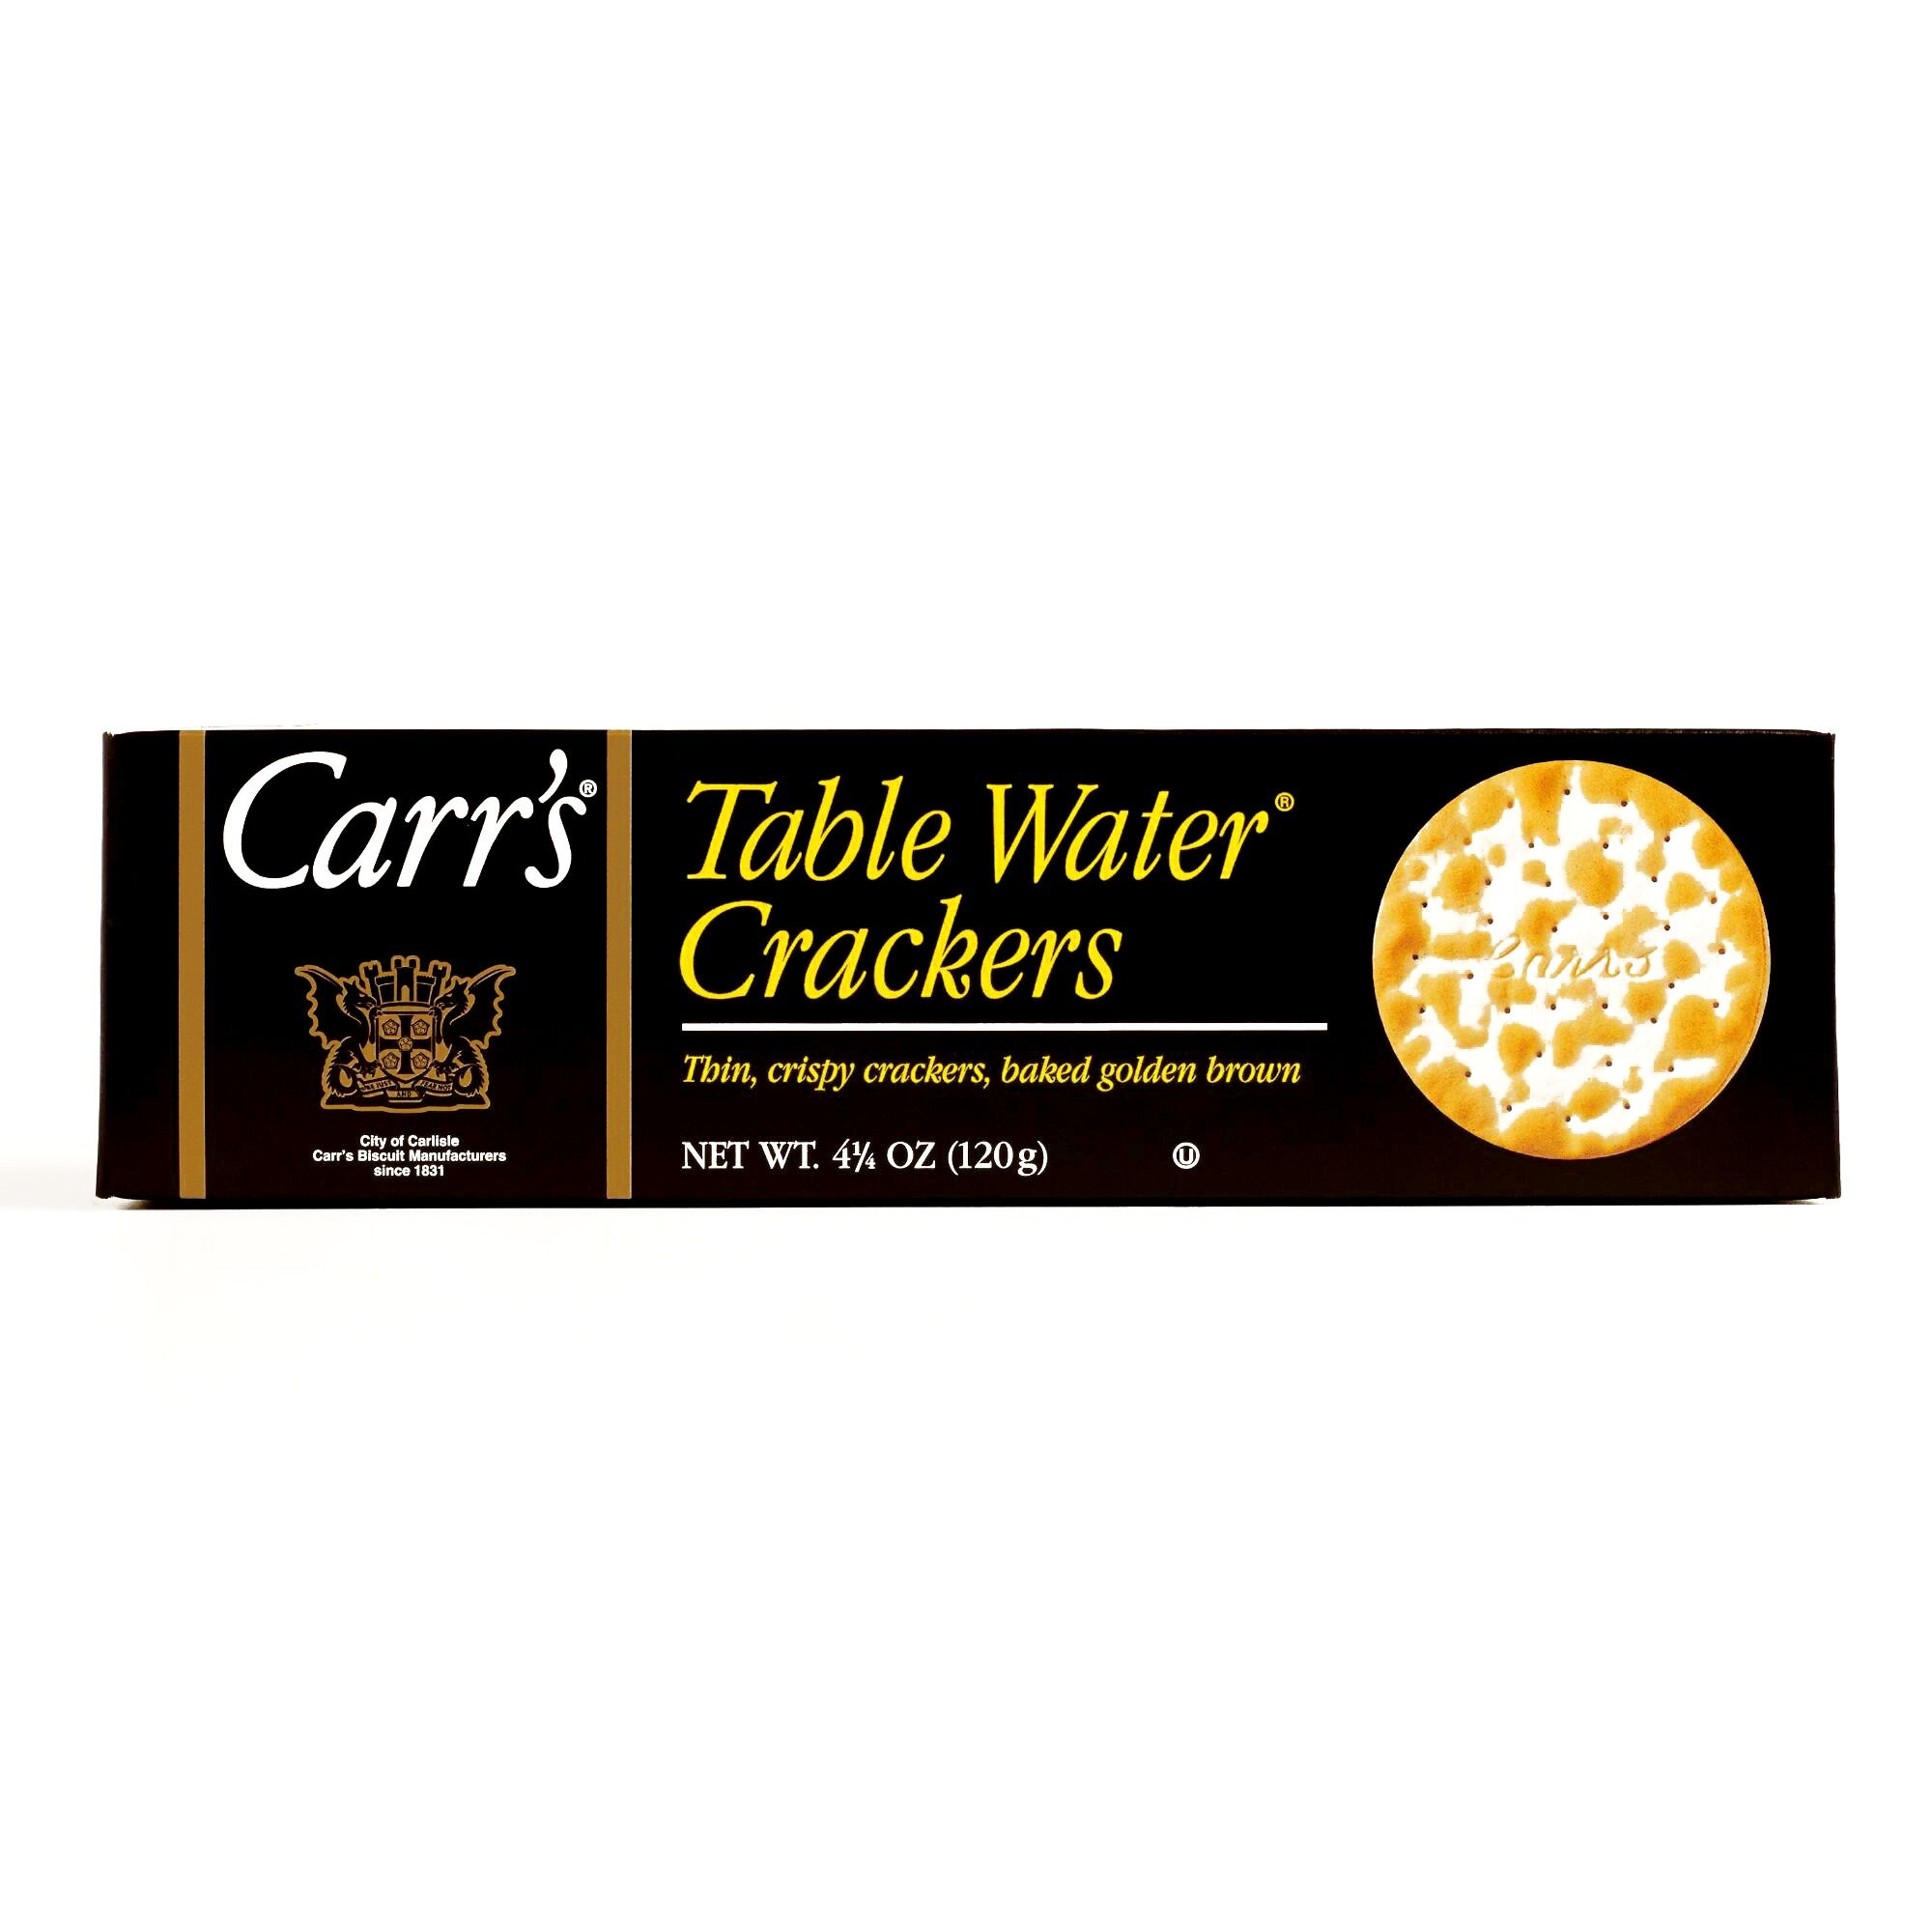 Carr's Table Water Crackers 4.25 oz each (2 Items Per Order)